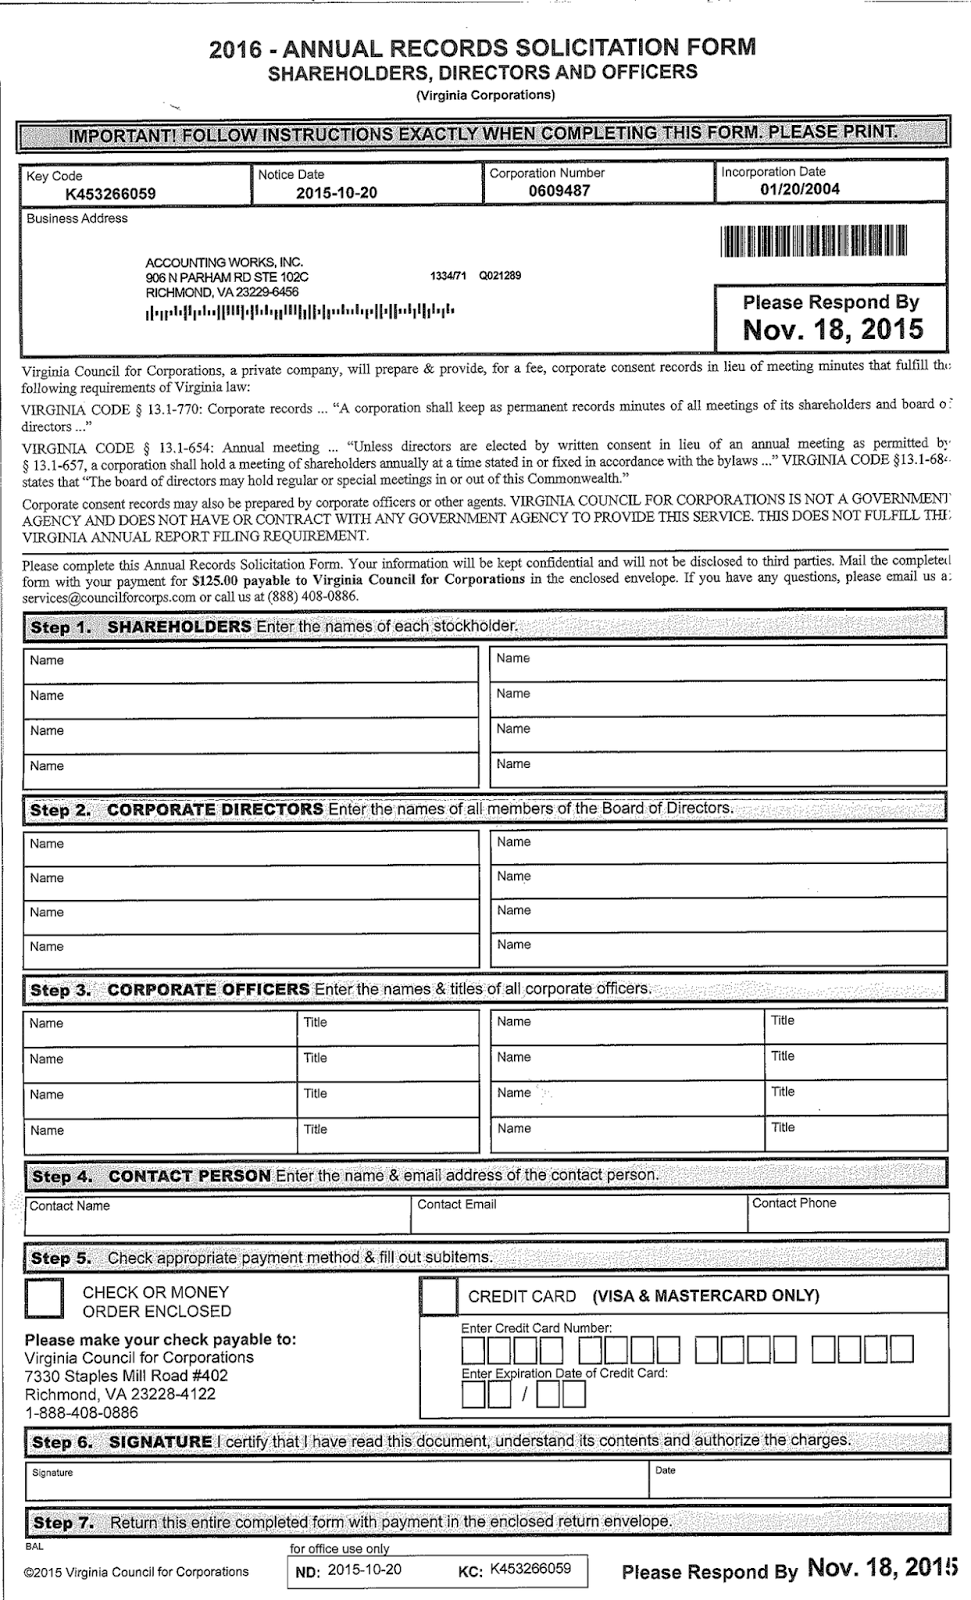 201511091125 Official Government Pport Application Form on